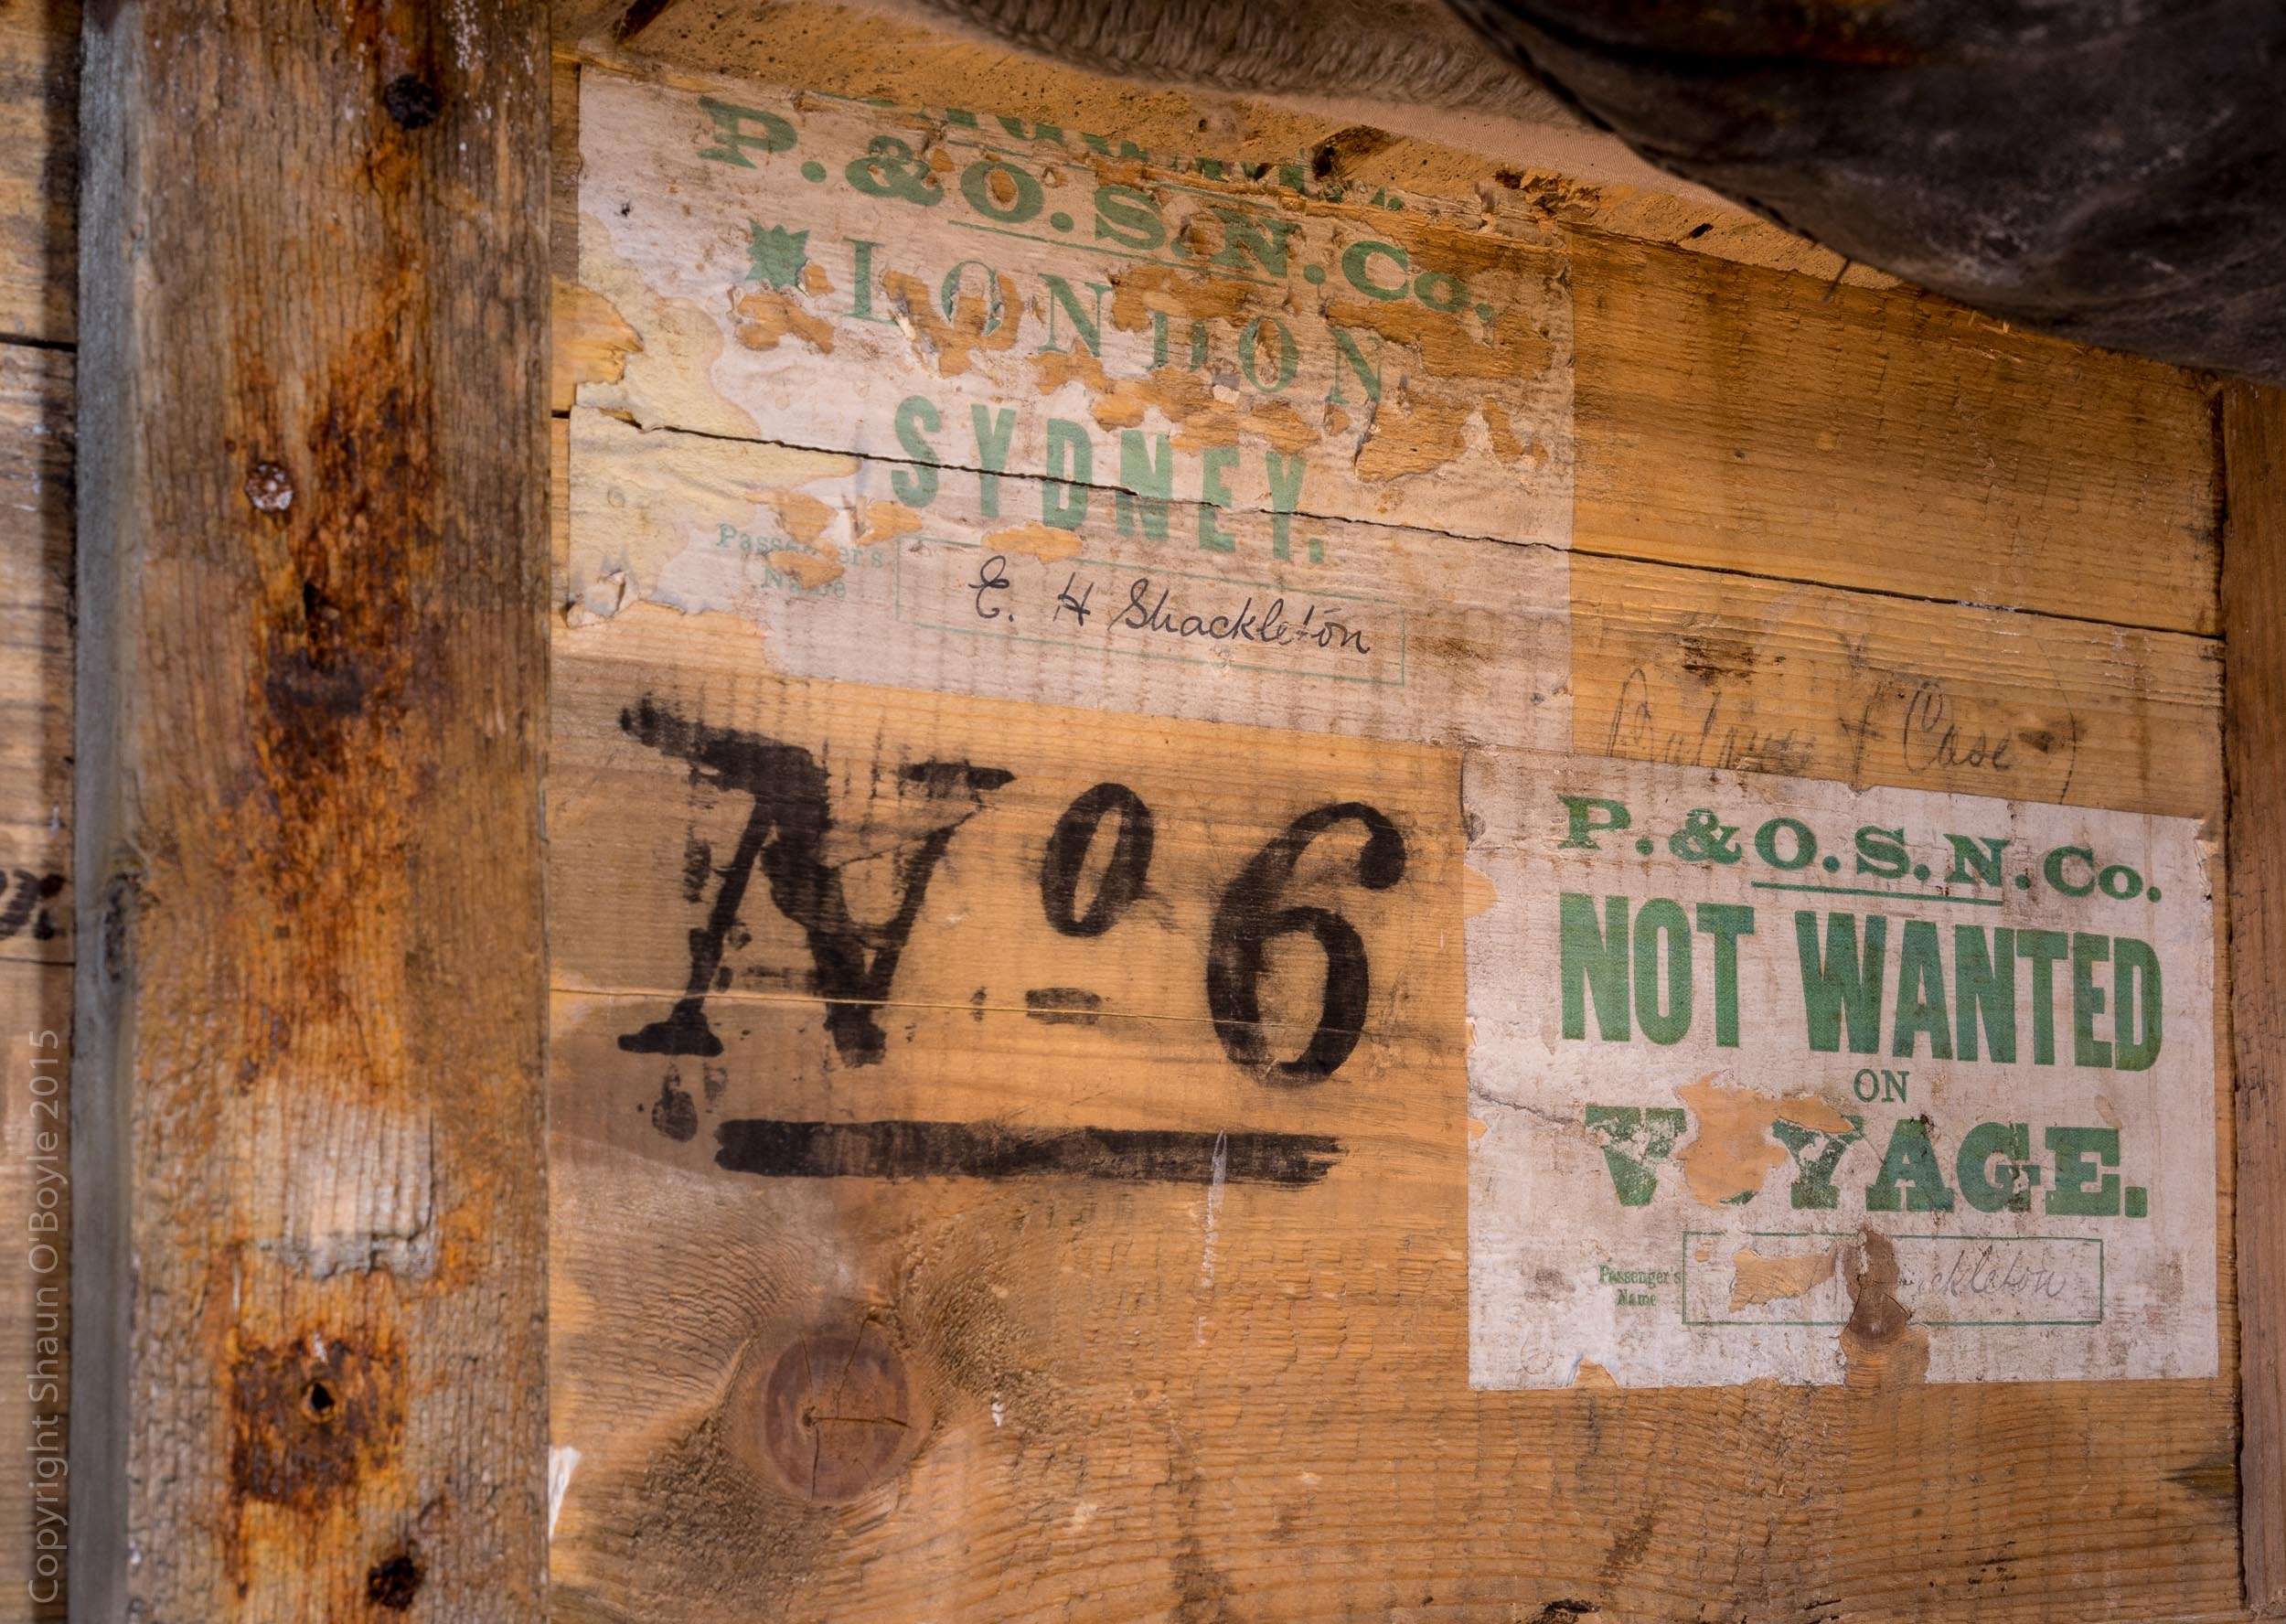 Shackleton's signature on a packing crate box